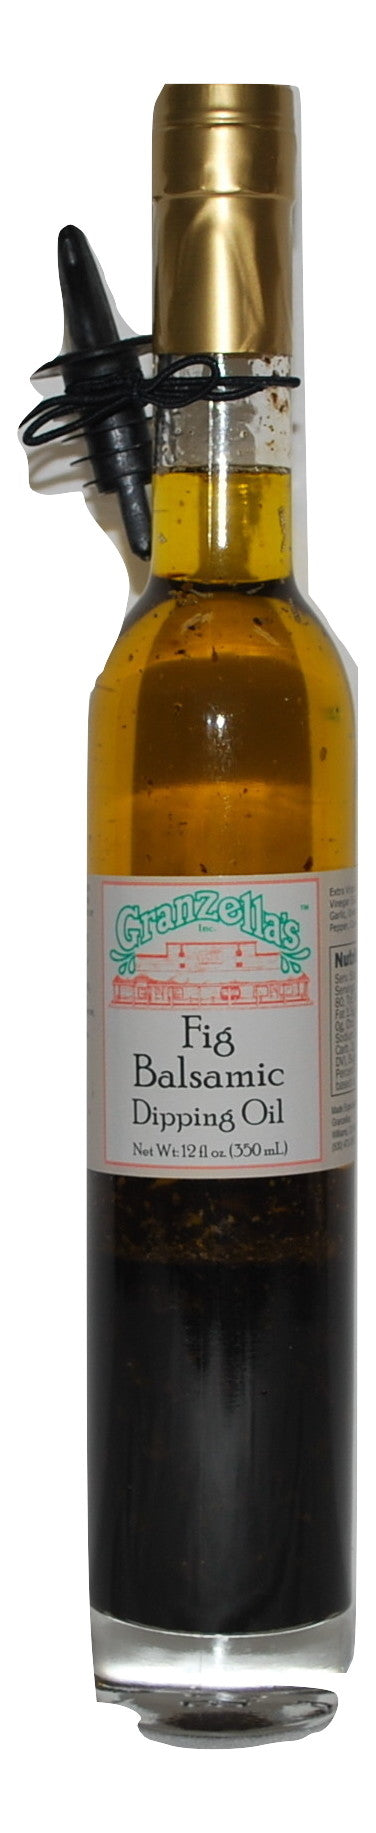 Fig Balsamic Dipping Oil